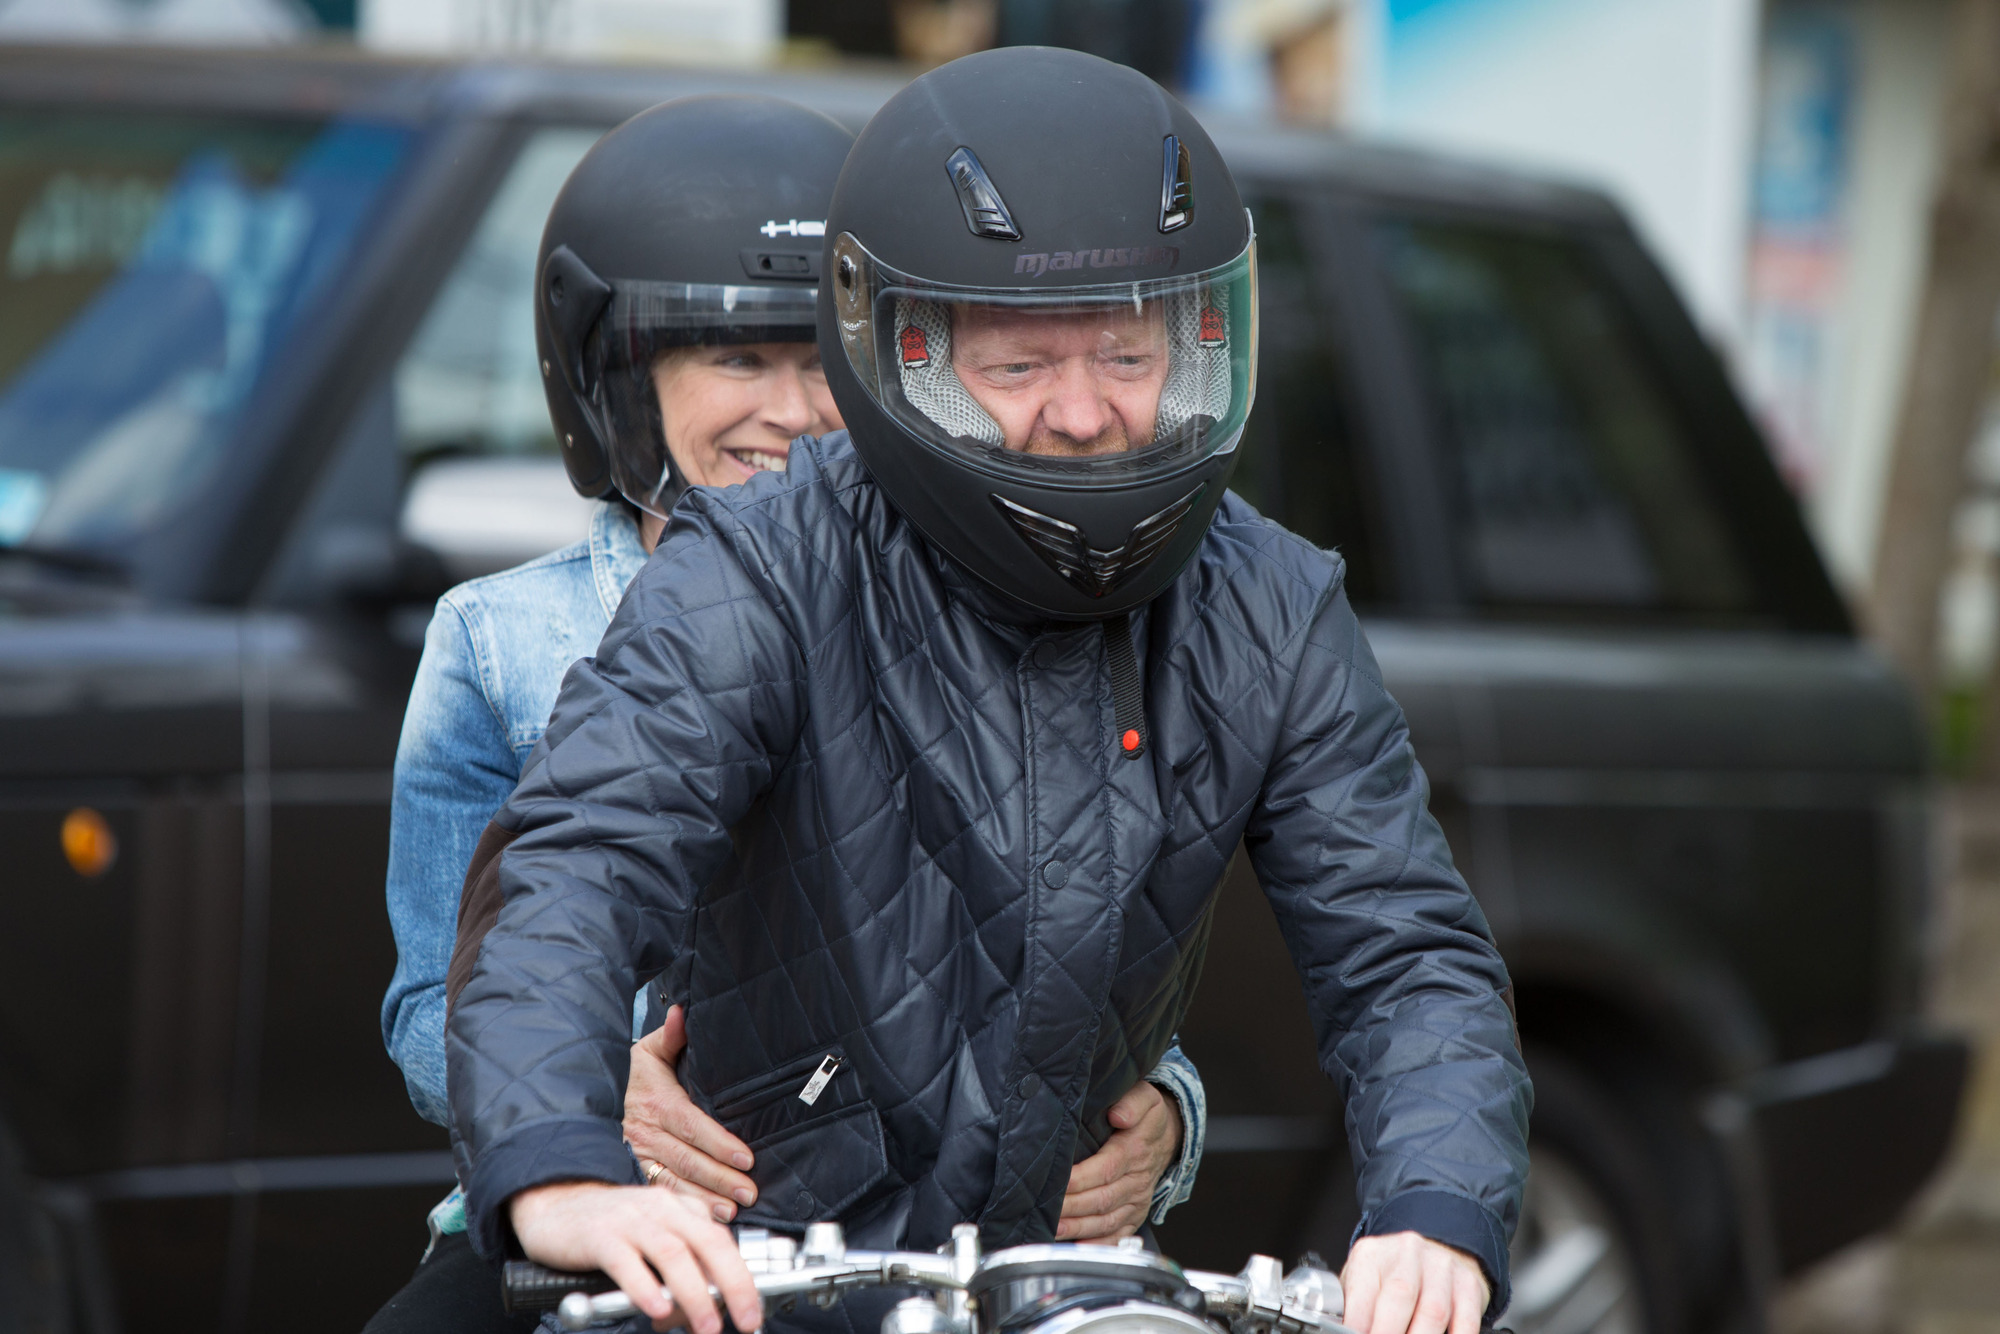 WARNING: Embargoed for publication until 30/06/2015 - Programme Name: EastEnders - TX: 06/07/2015 - Episode: 5097 (No. n/a) - Picture Shows: Carol and Max prepare to go for a spin on Jim's old bike.  Carol Jackson (LINDSEY COULSON), Max Branning (JAKE WOOD) - (C) BBC - Photographer: Jack Barnes